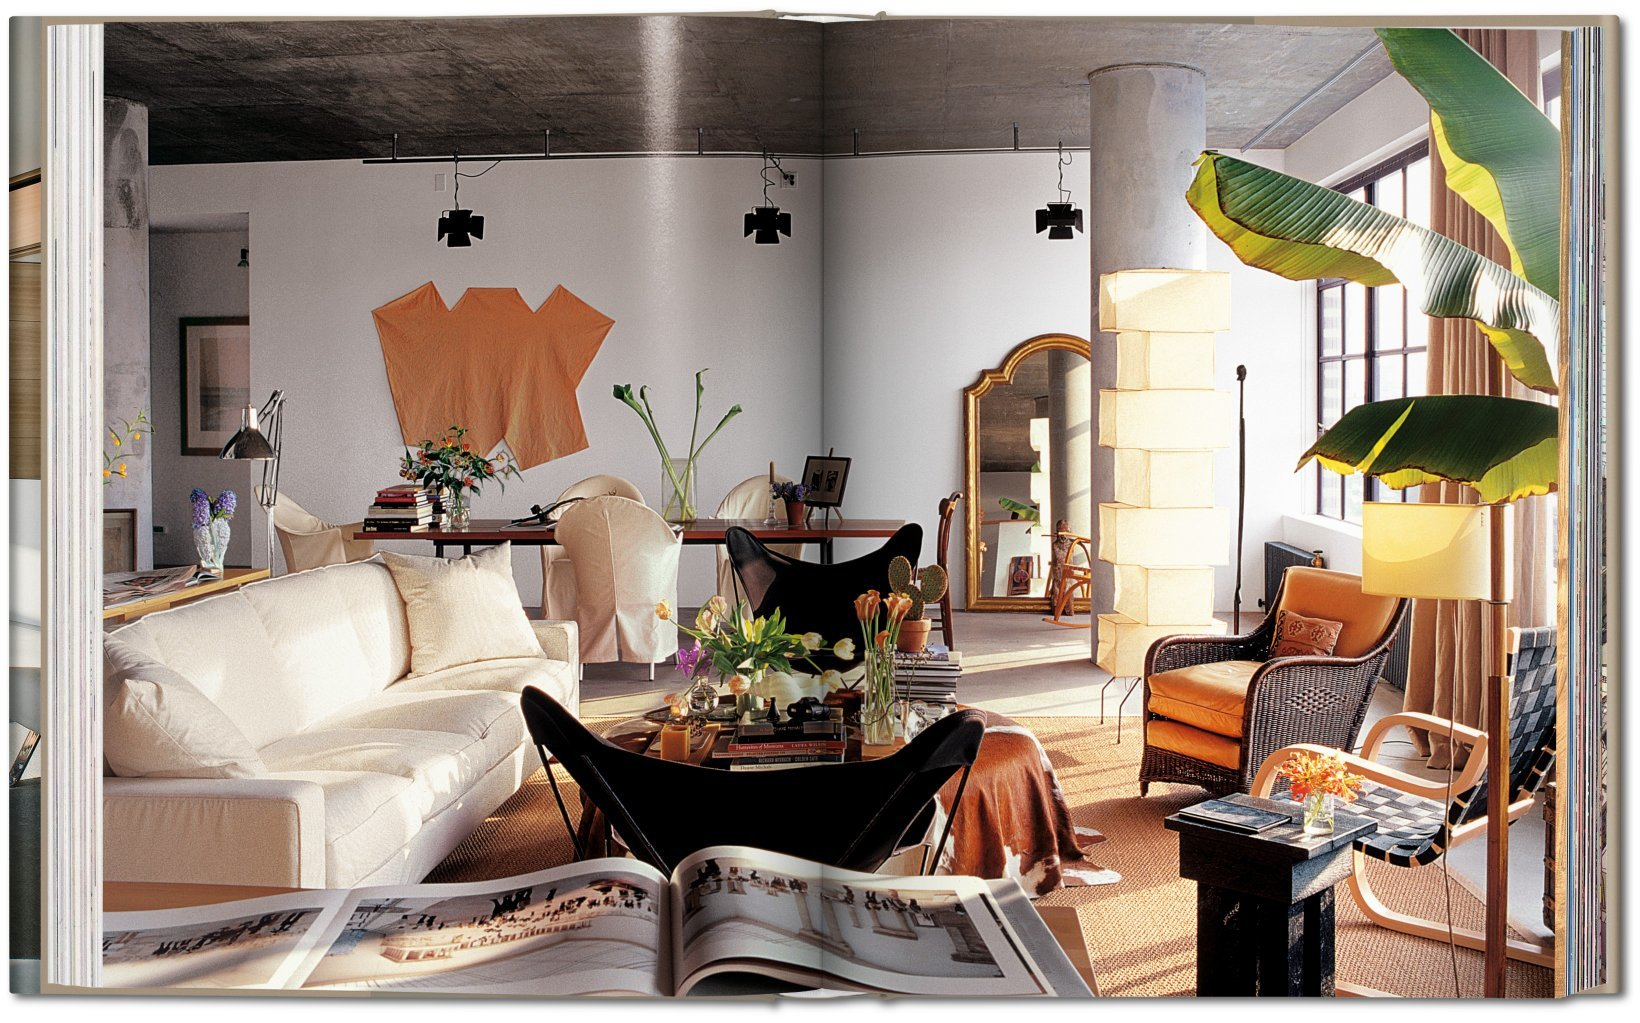 New new york interiors not available taschen books - Wendy o brien interior planning design ...